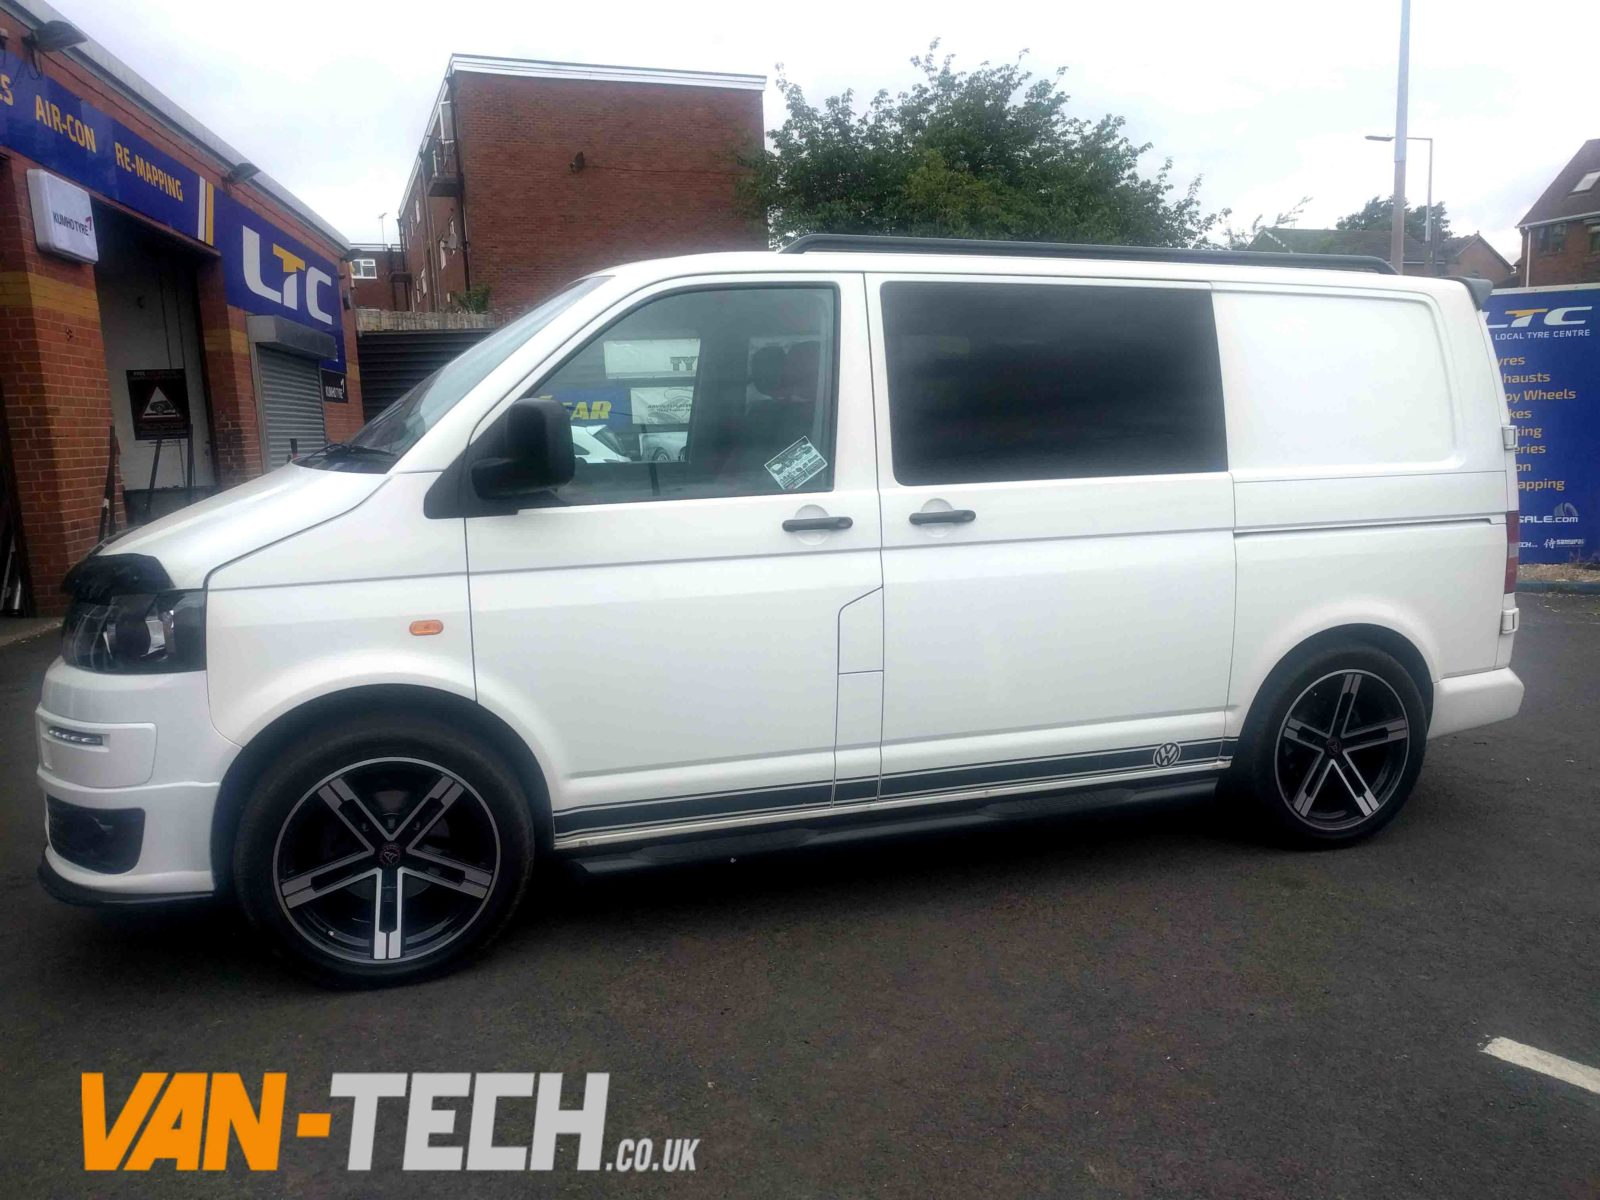 sold vw transporter t5 factory combi van white 2007 1 9 tdi swb van tech. Black Bedroom Furniture Sets. Home Design Ideas